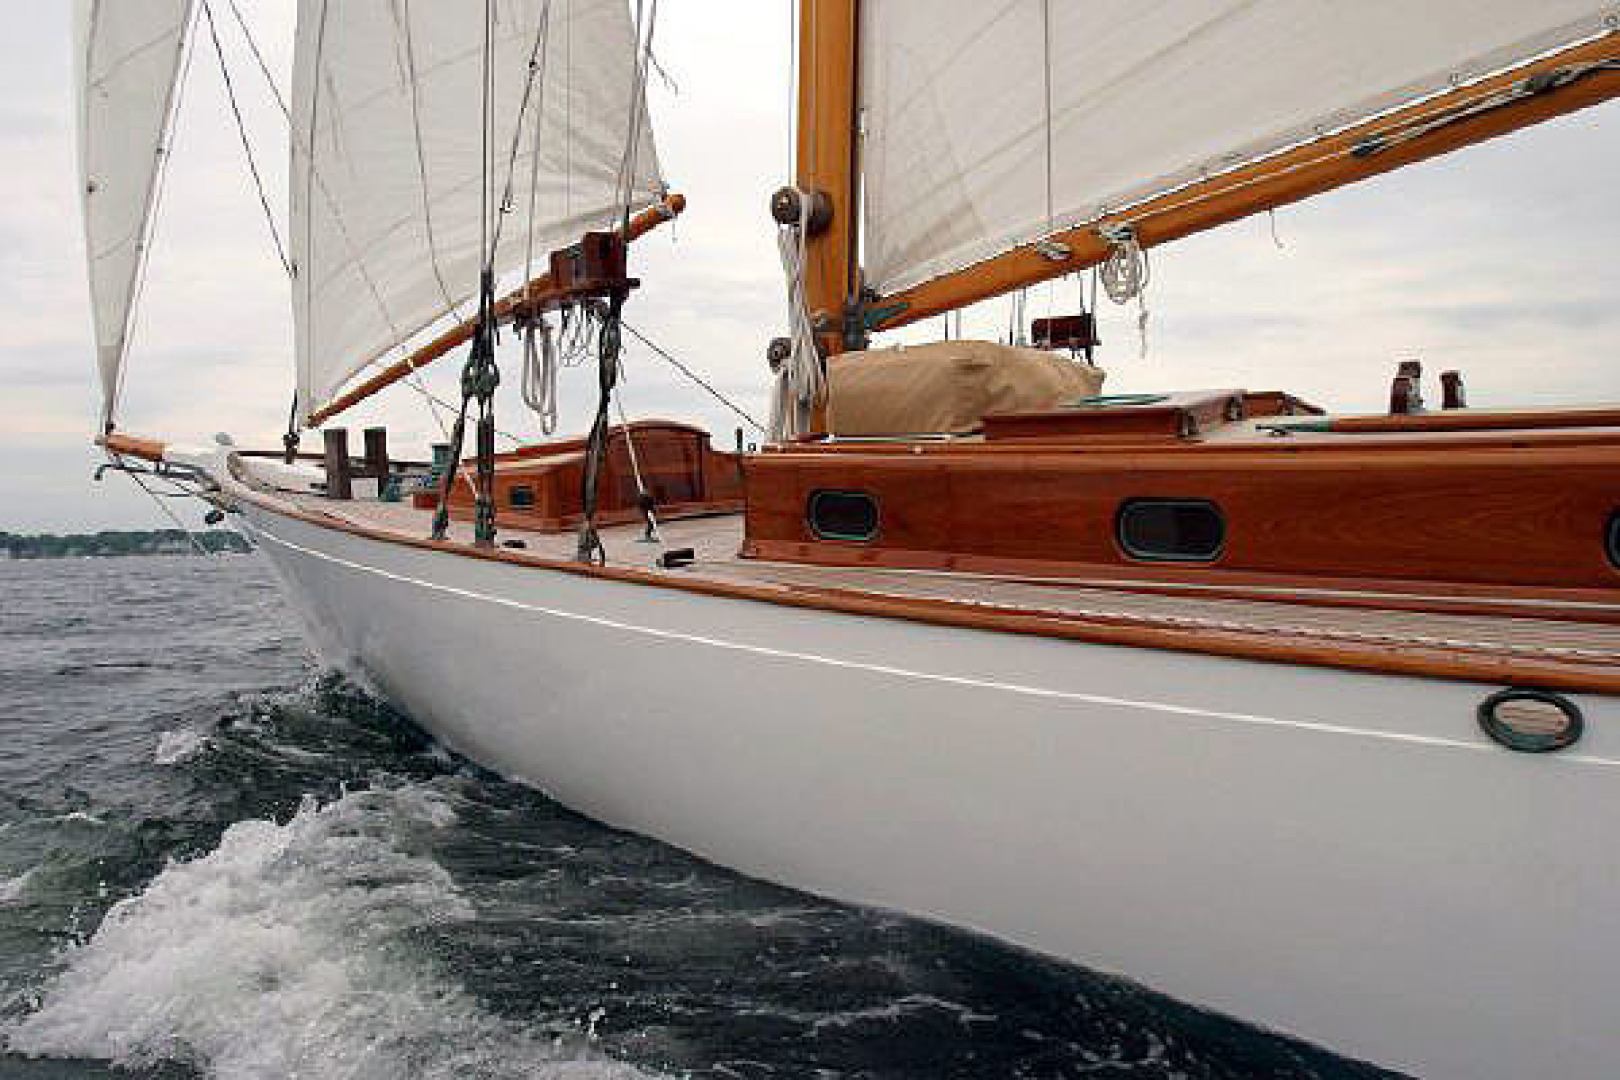 Herreshoff-Bounty 58 2004-CATRIONA Mattapoisett-Massachusetts-United States-Fwd. Port Qtr.-1560601 | Thumbnail